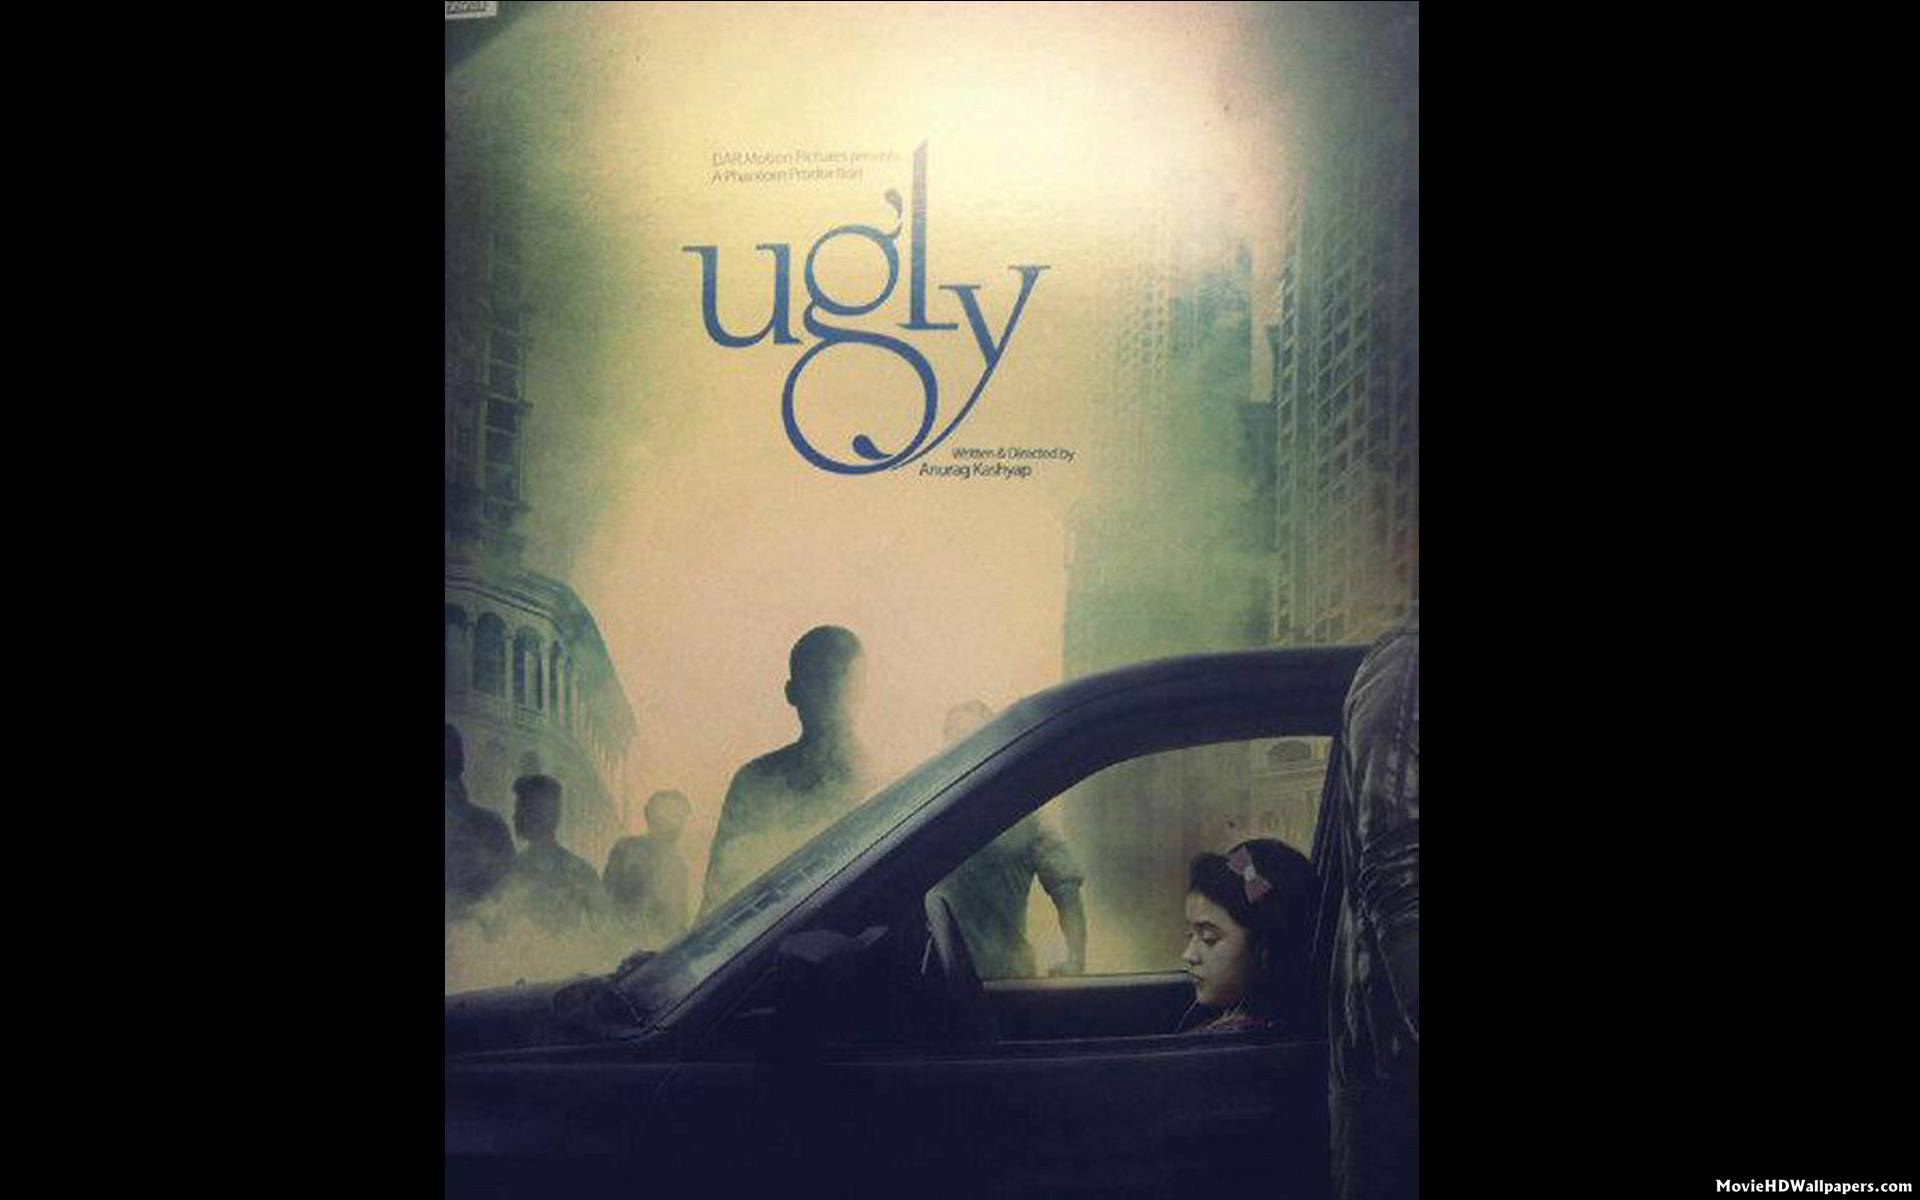 Ugly 2013 movie hd wallpapers for Table no 21 full movie